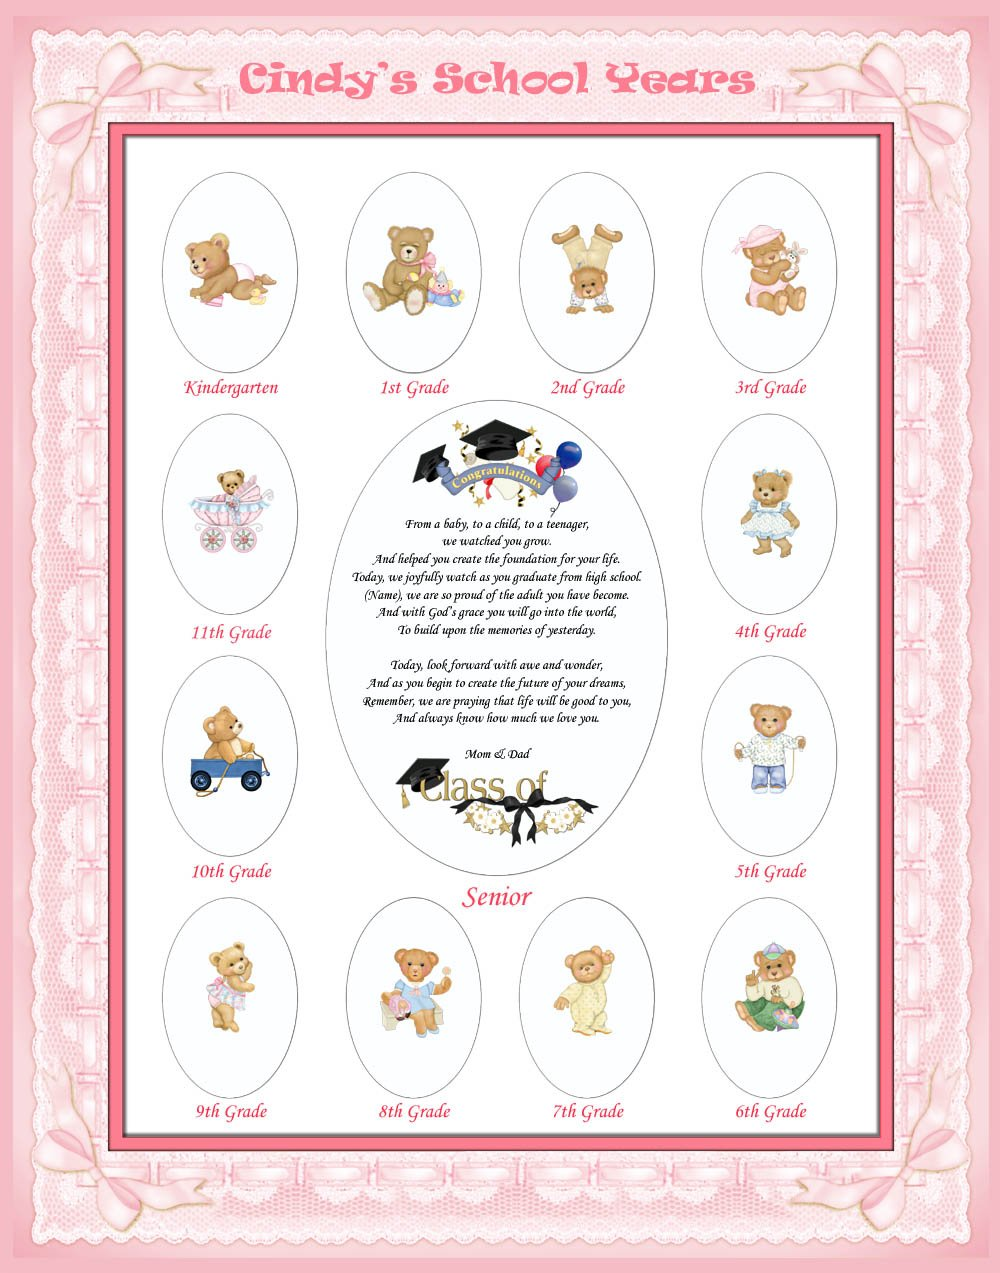 16 X 20 Personalized Pink Girl Ribbon Border My School Year Photo Mat with Teddy Bear Illustration. Cute Baby Shower or Nursery Decor Newborn Gift